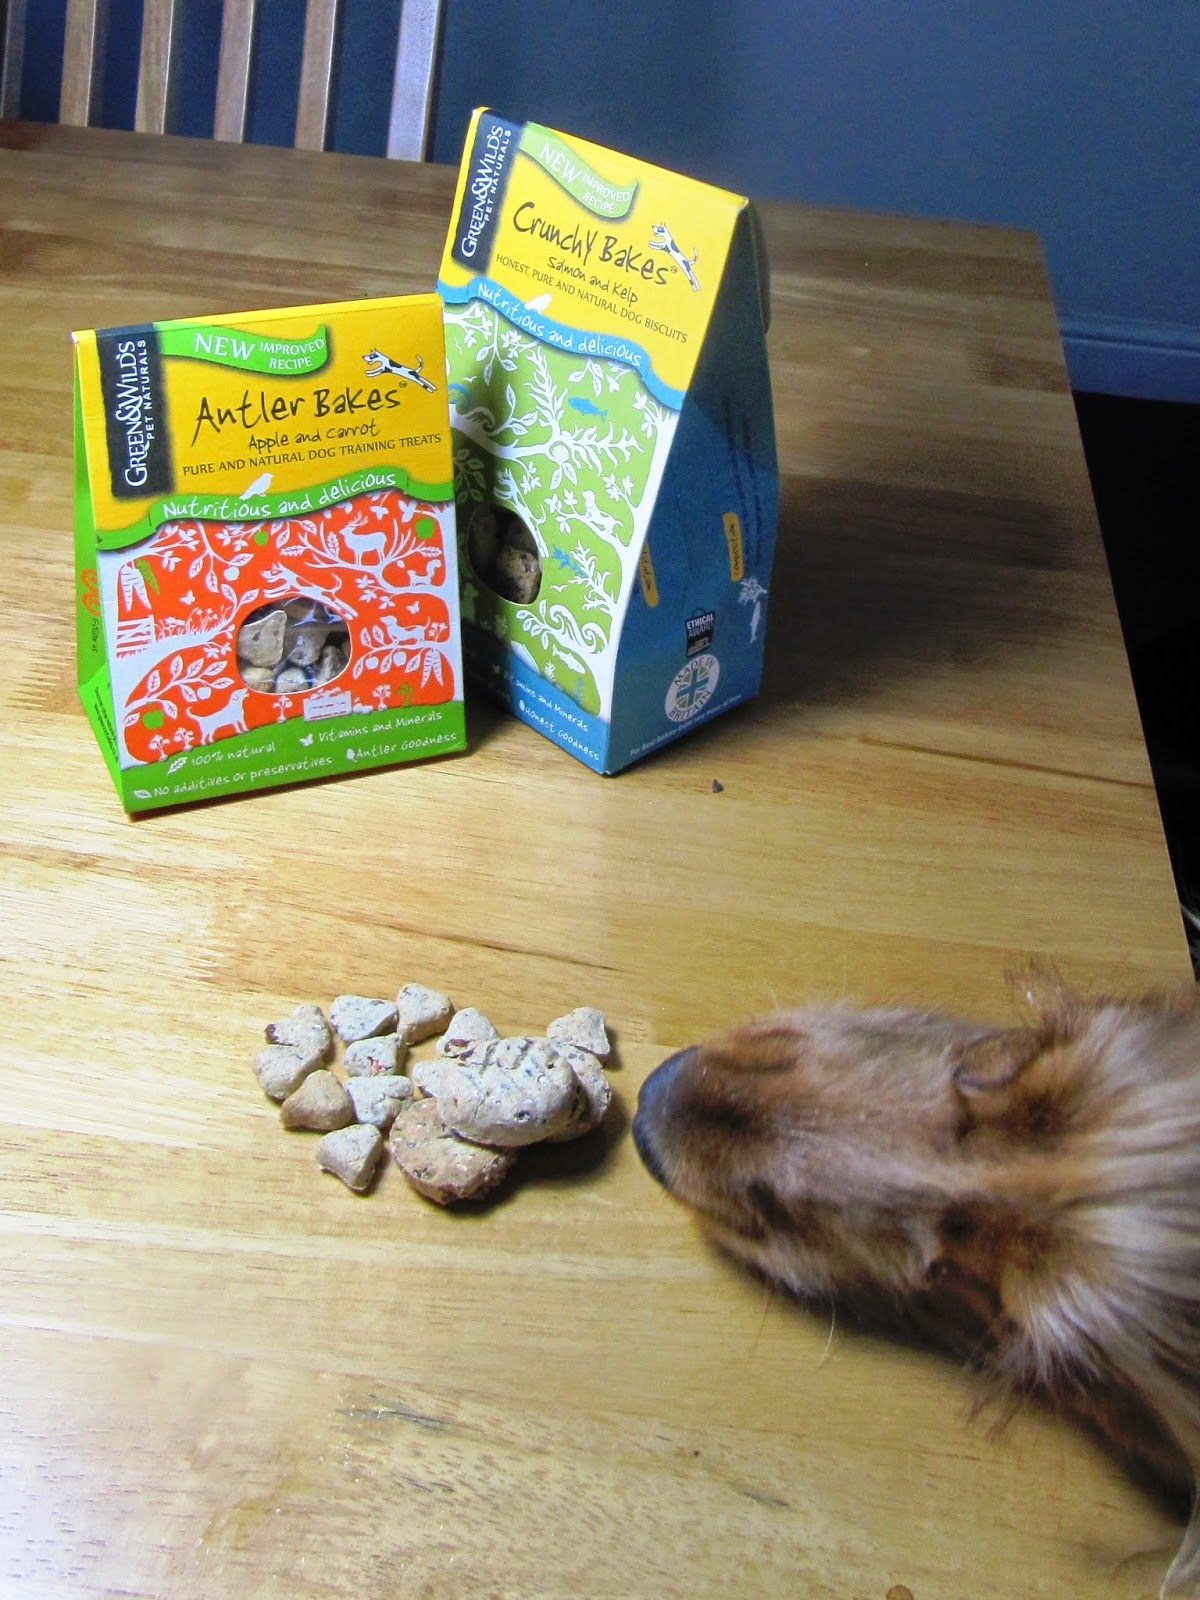 Spaniels Tail: Green and Wild's baked antler biscuits review